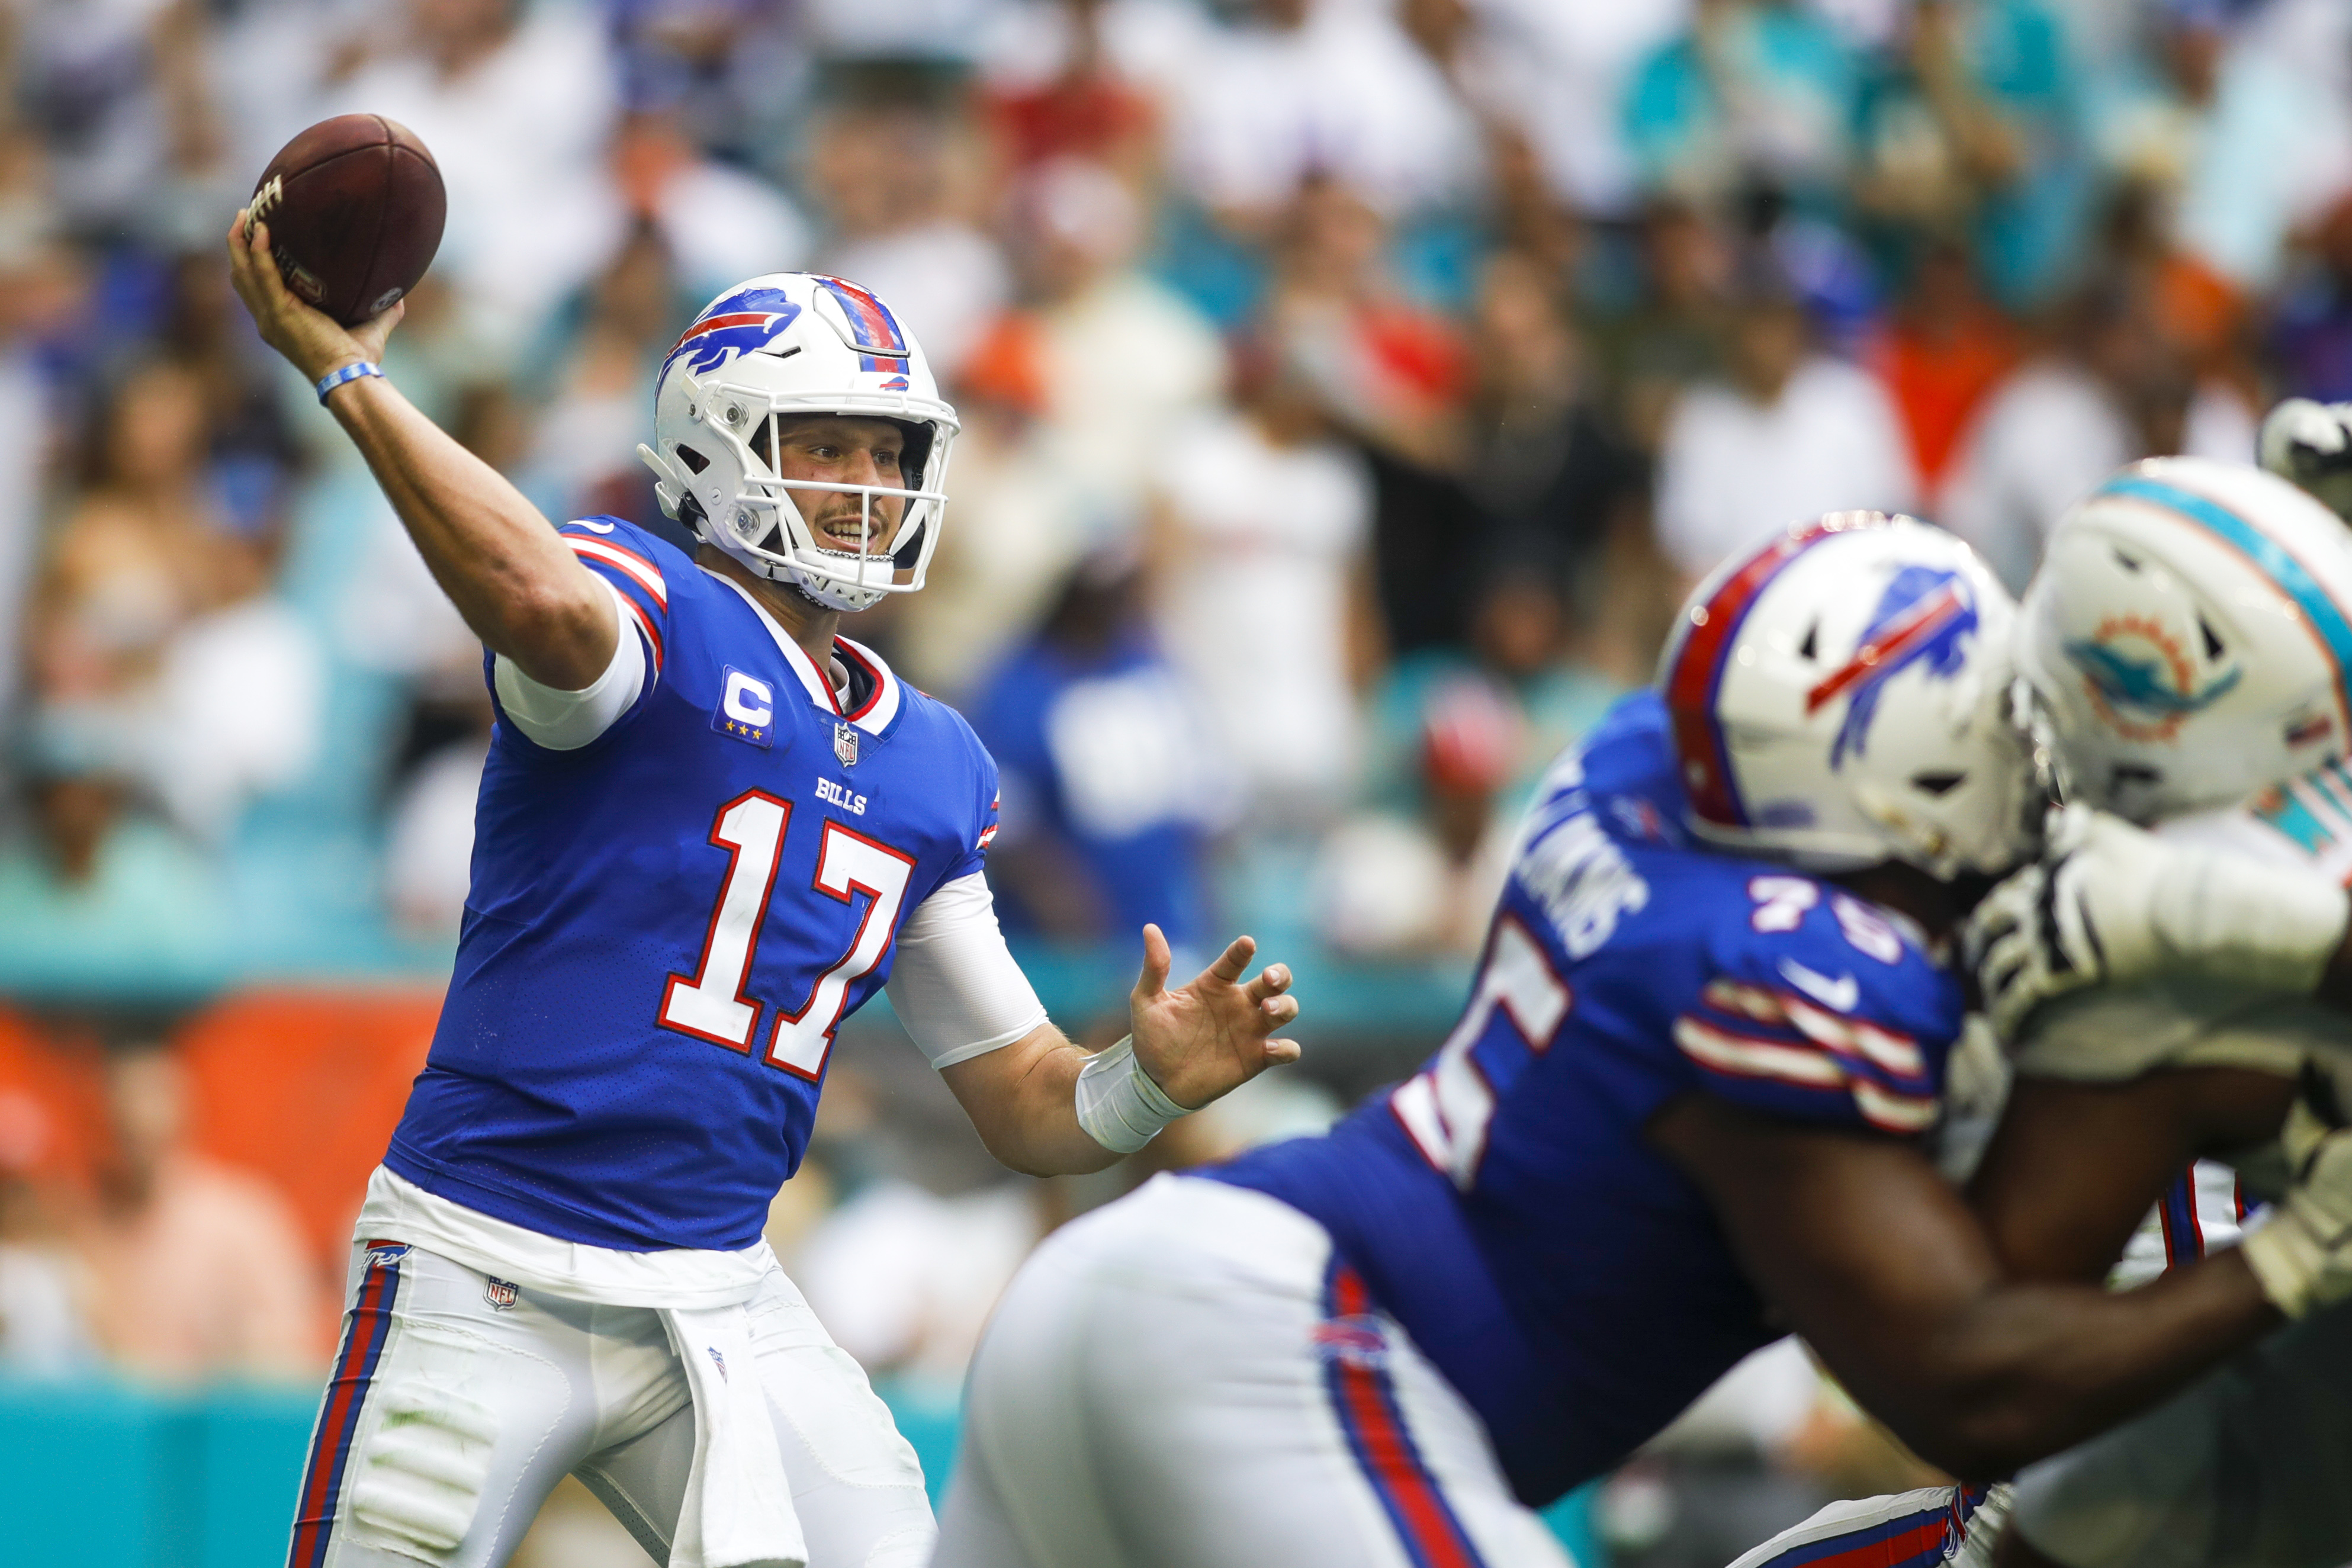 Buffalo Bills quarterback Josh Allen (17) throws a pass during the second quarter of the game against the Miami Dolphins at Hard Rock Stadium.